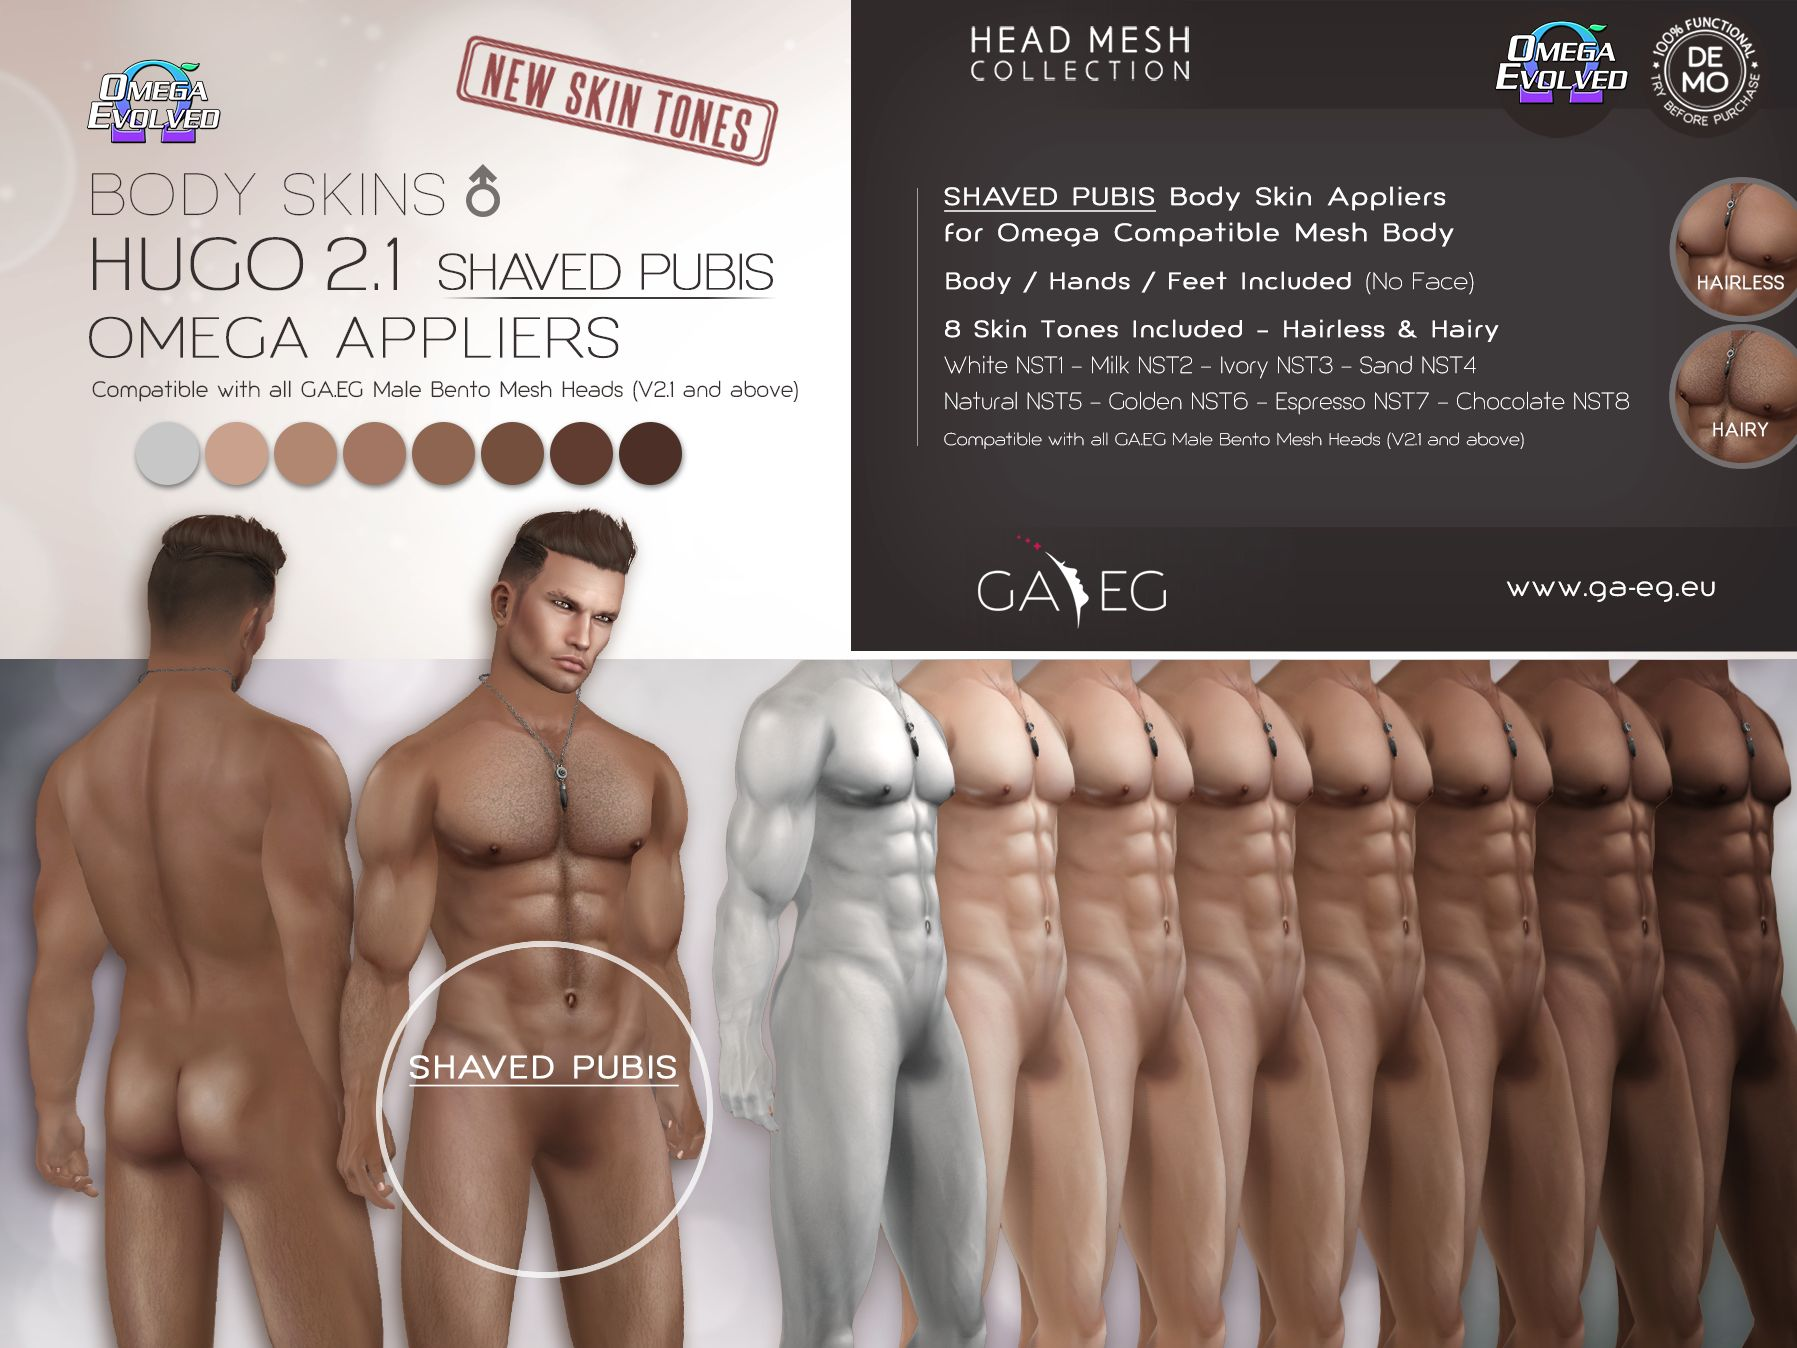 Hugo BODY SKINS SHAVED PUBIS Omega